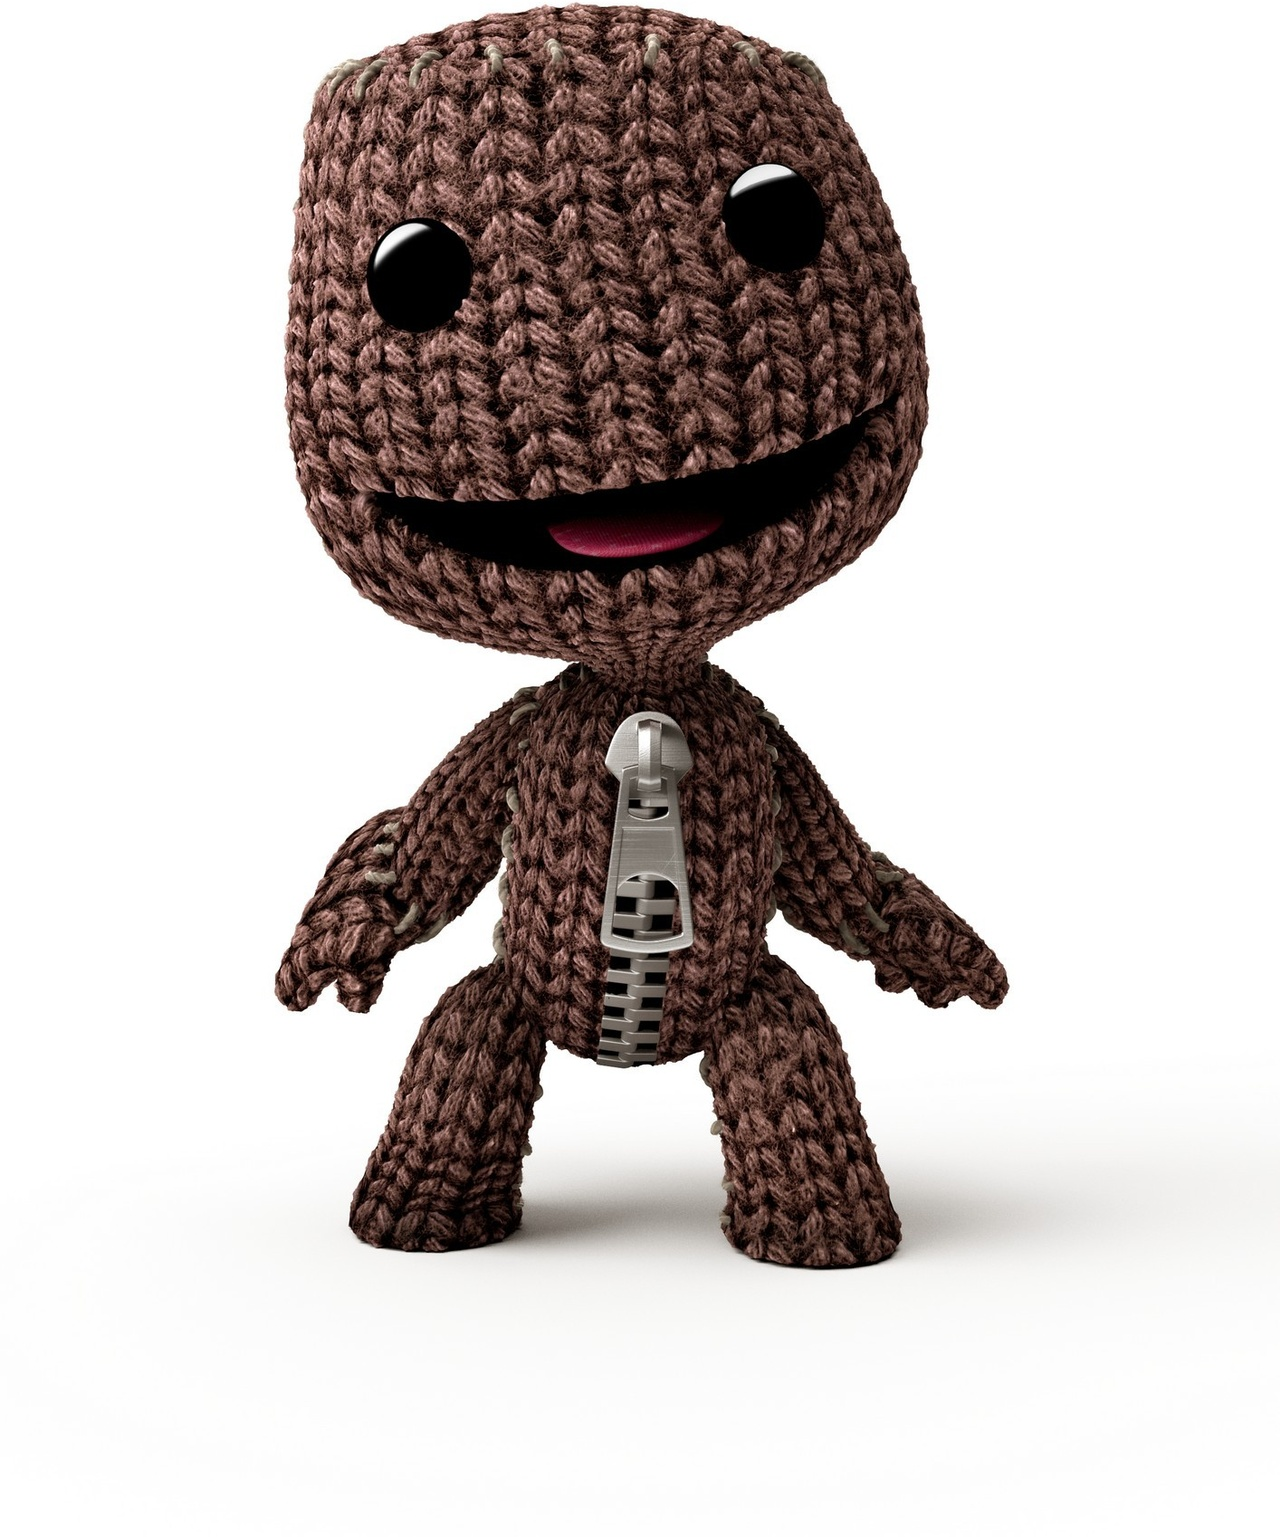 LittleBigPlanet 2 Playstation 3 | 2